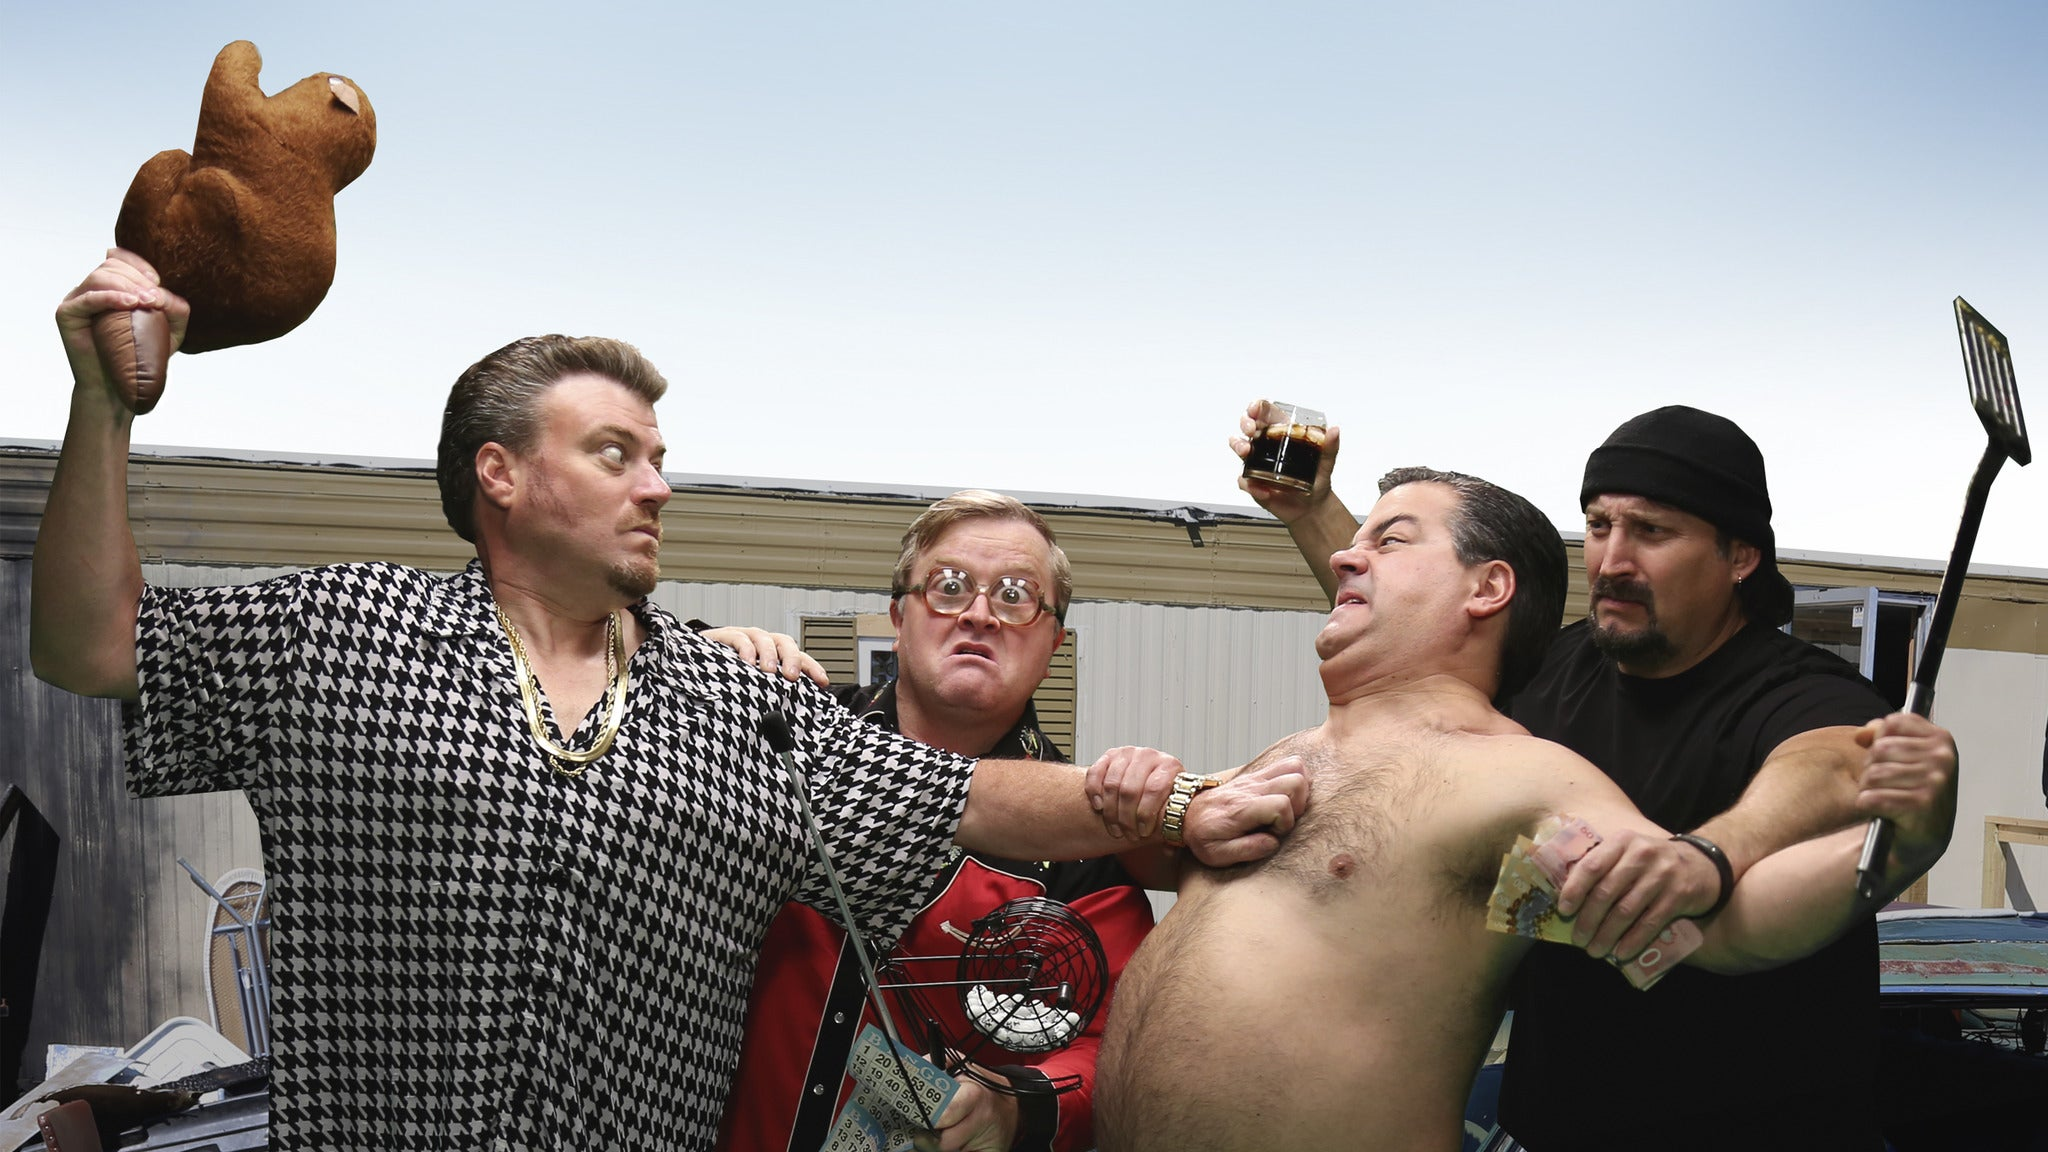 Trailer Park Boys at Paramount Theatre-Oakland